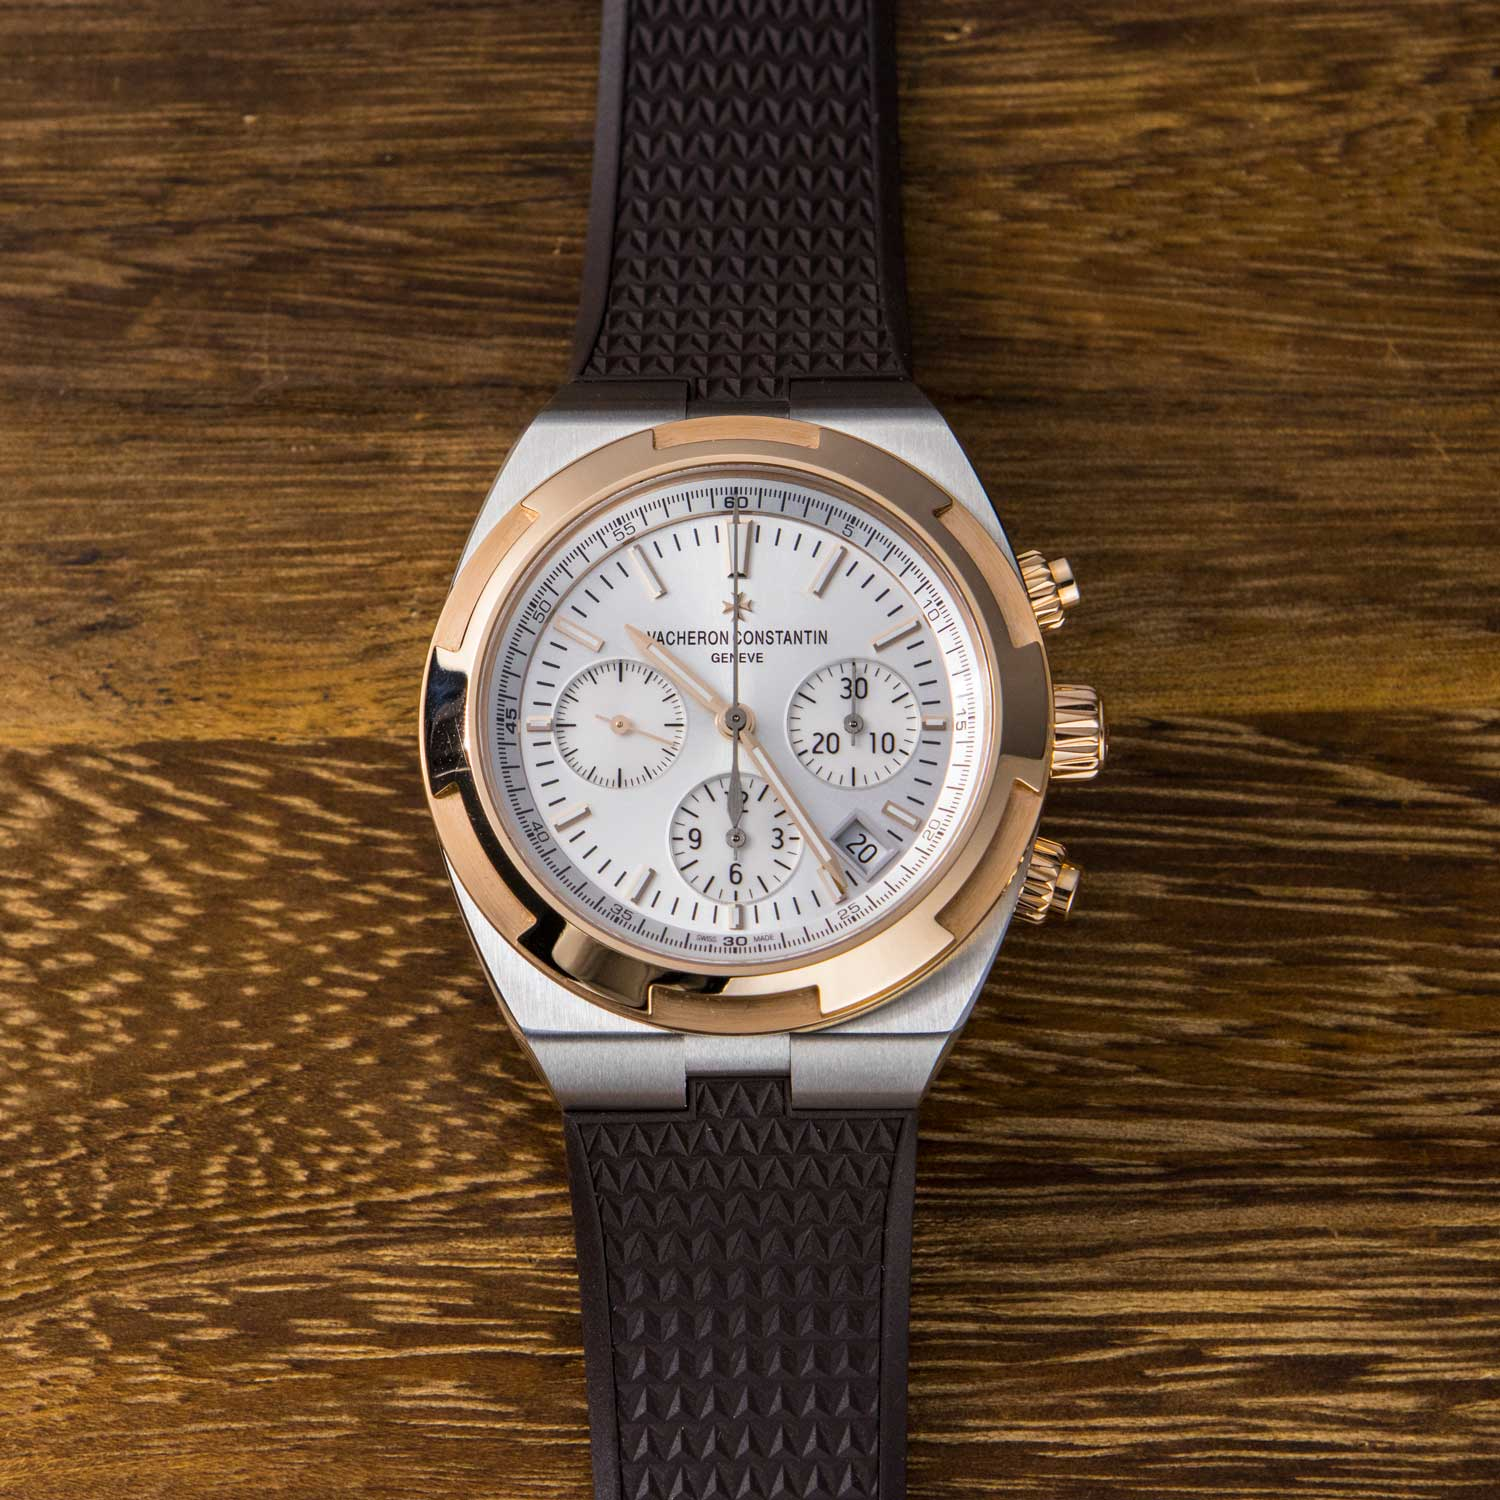 Vacheron Constantin's 2017 two-tone Overseas chronograph